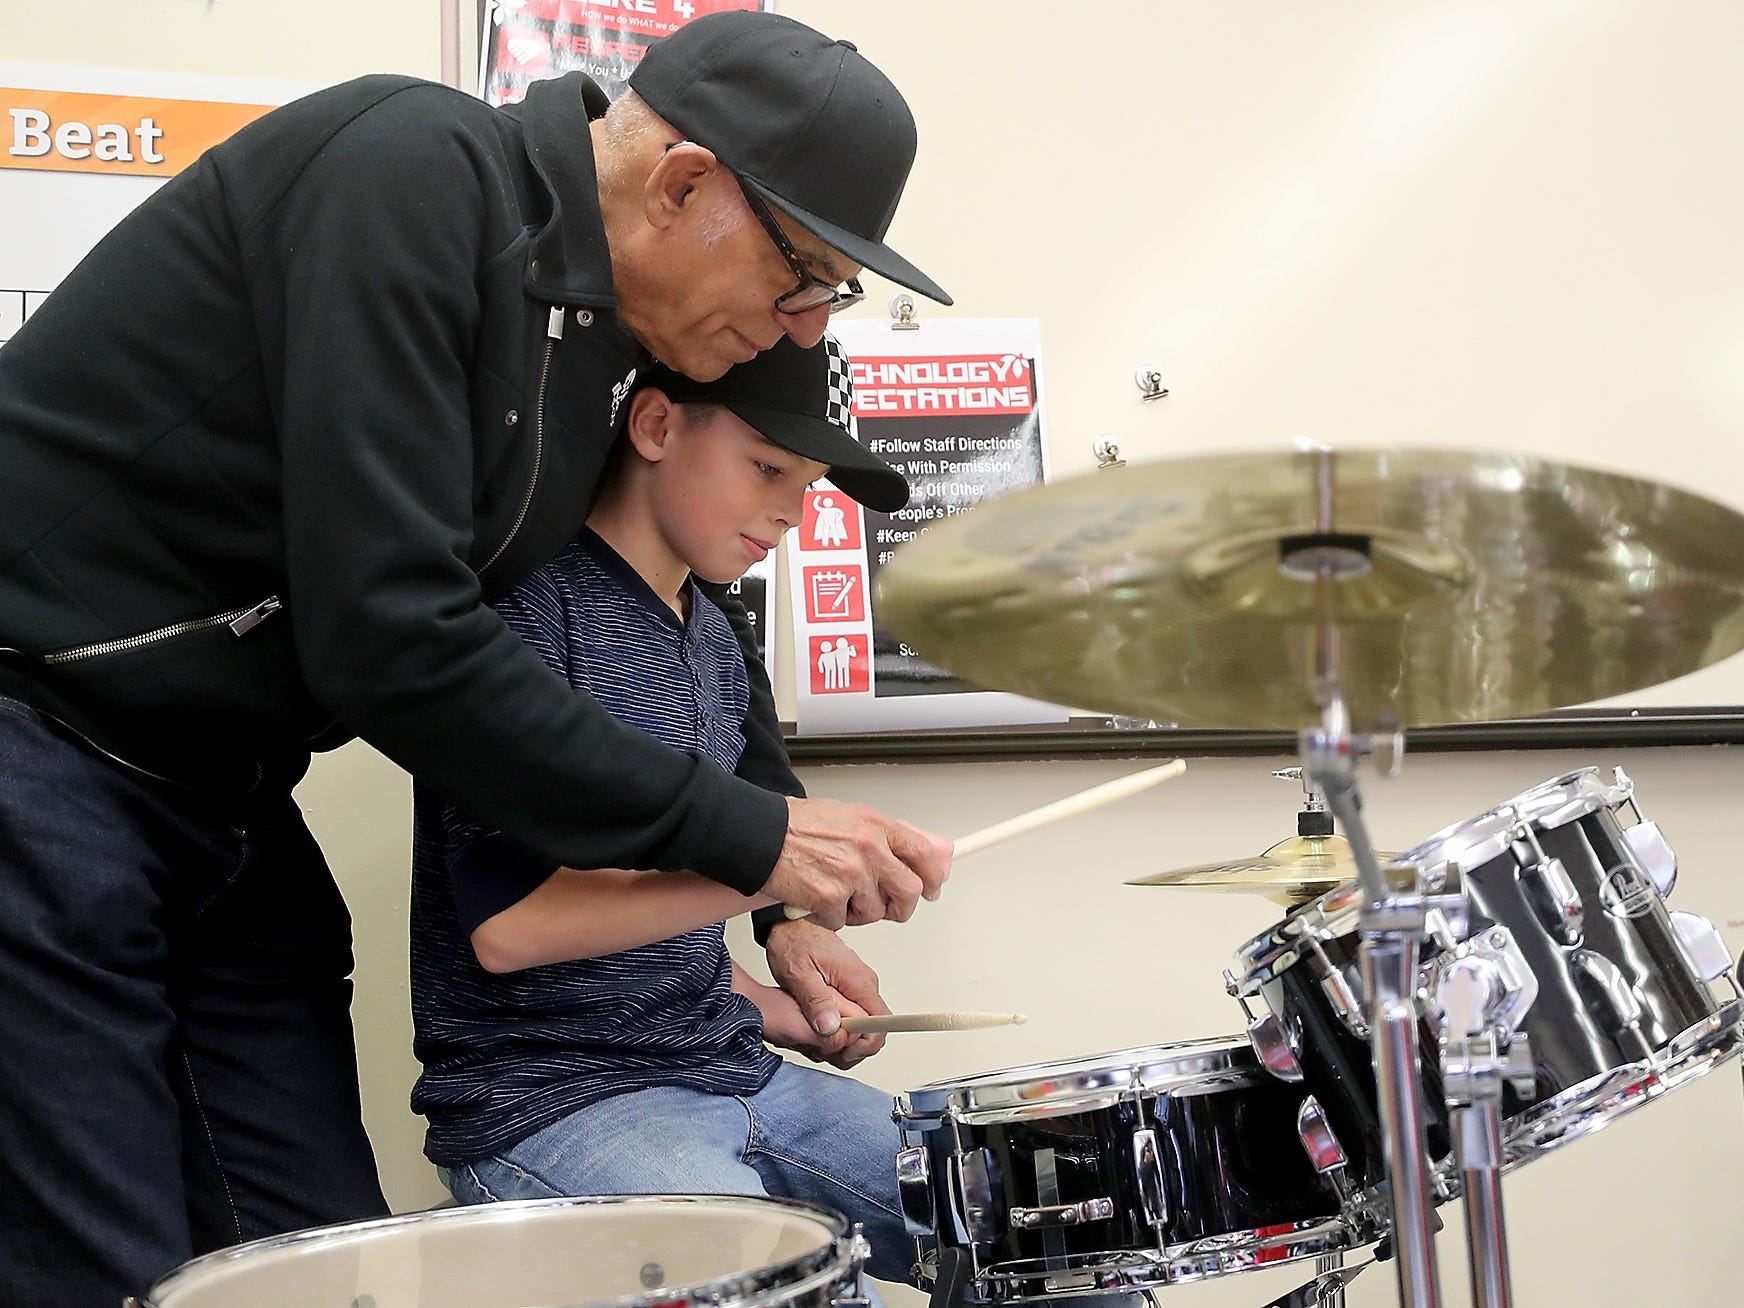 The Lords of 52nd Street drummer Liberty DeVitto gives a few pointers to student Jaiden Williams, 11, during the band's visit to Ridgetop Middle School in Silverdale on Friday, March 8, 2019.